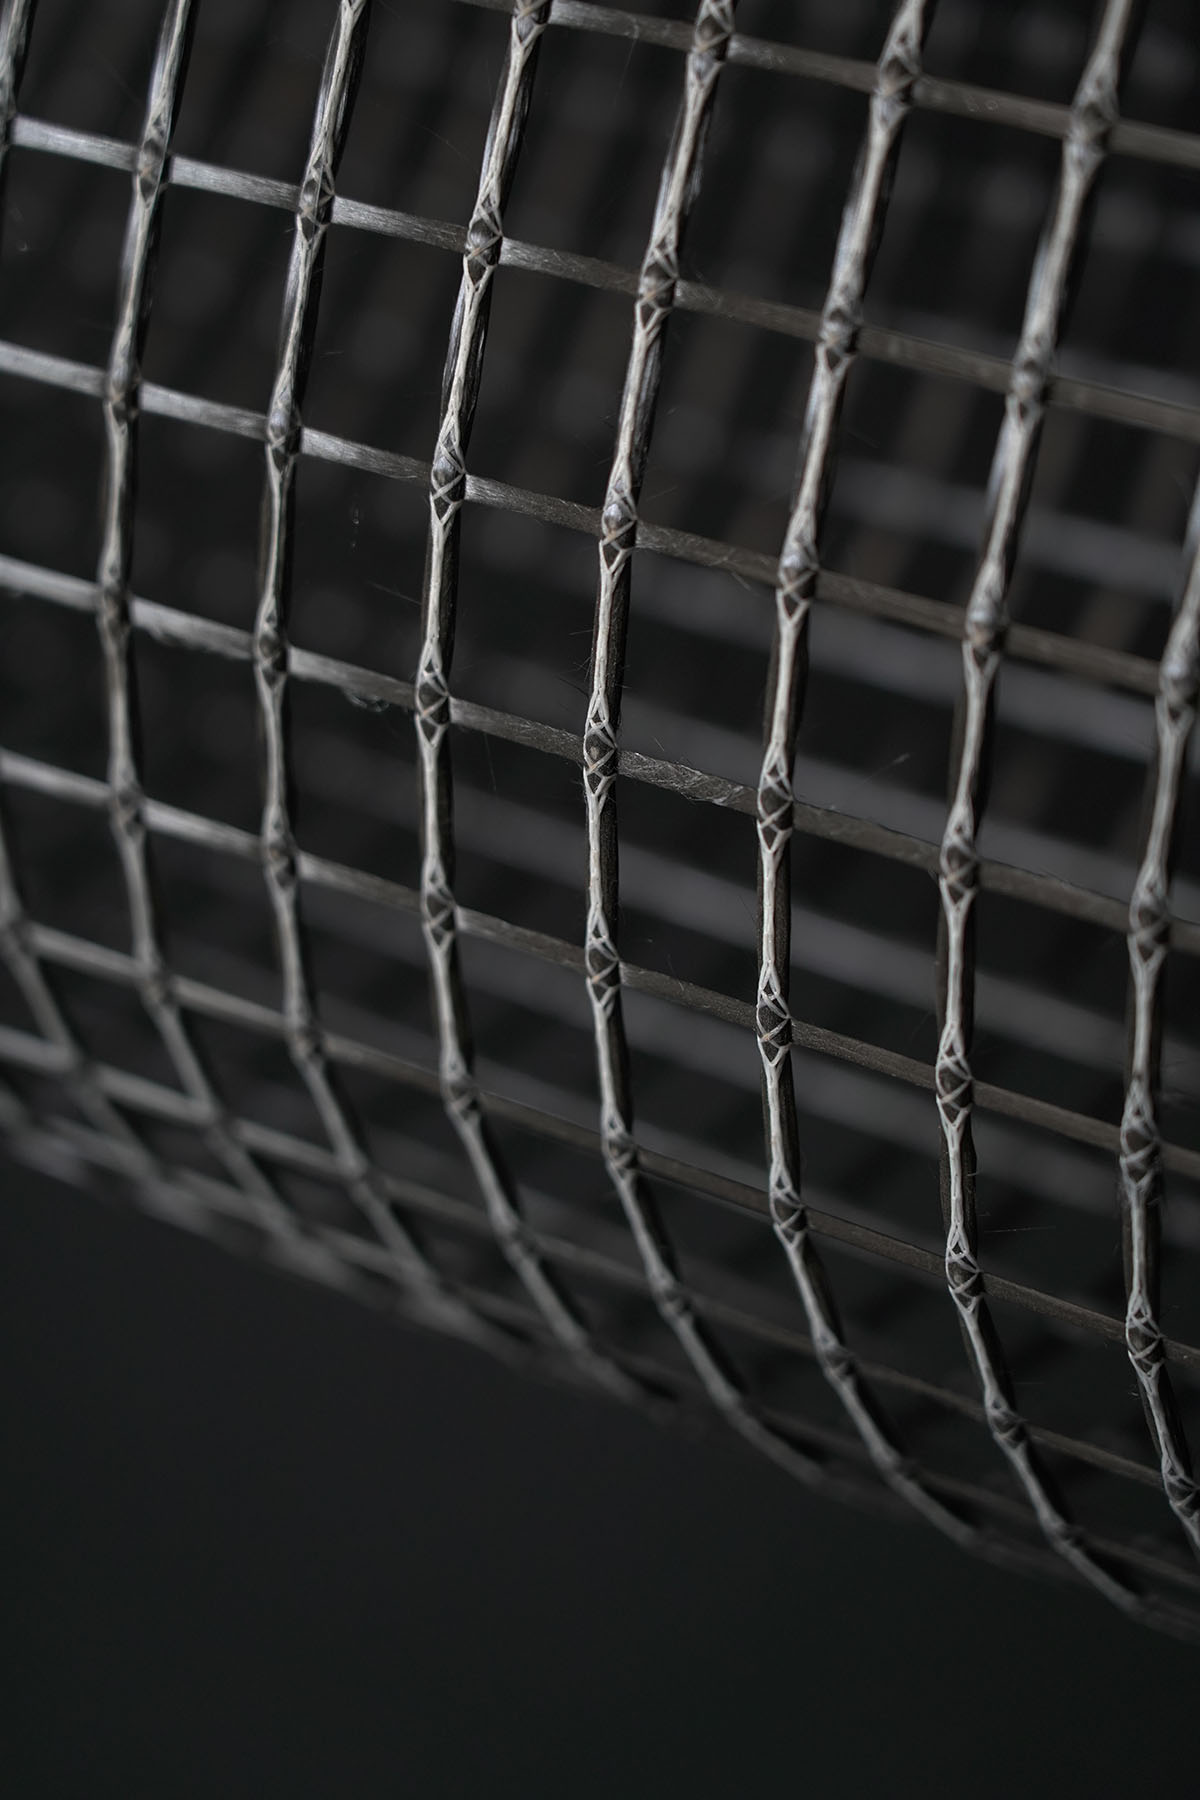 HITEXBAU presents the first concrete reinforcement made of carbon and offered in large quantities